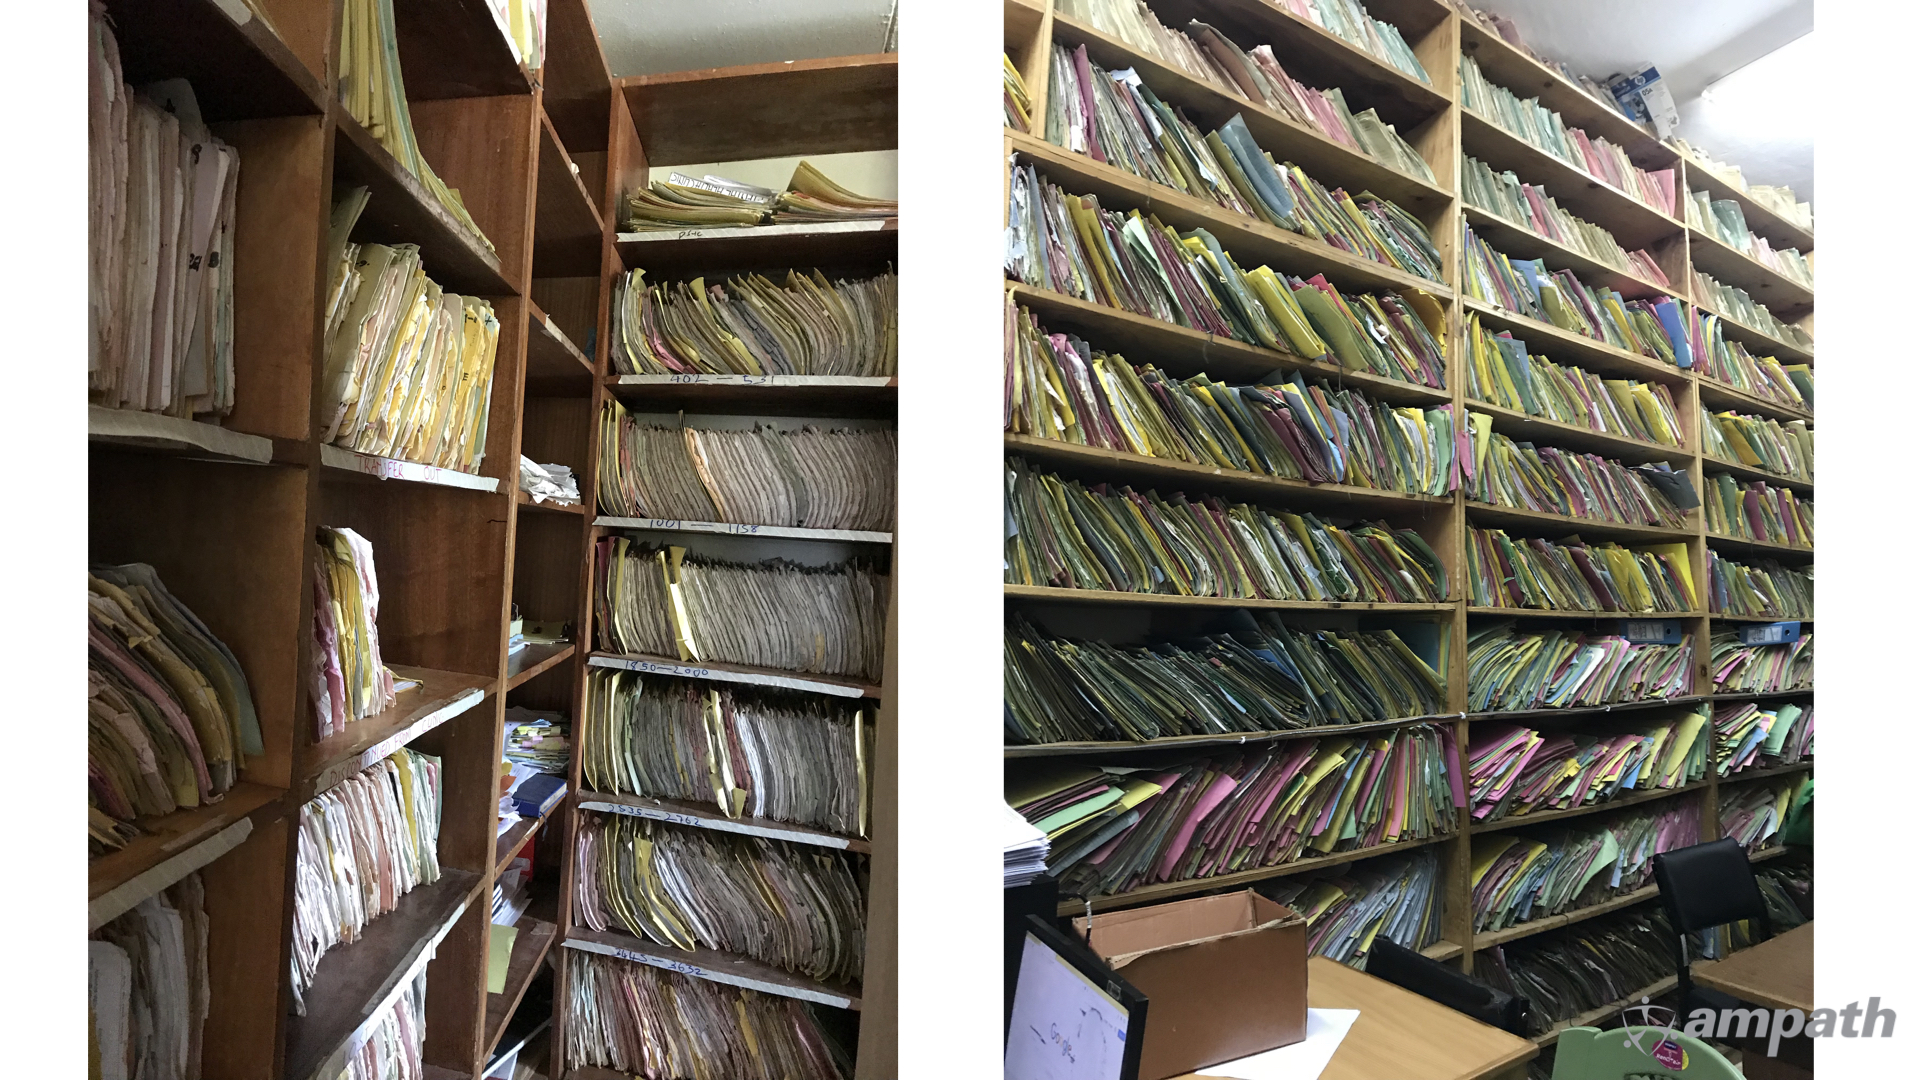 Some AMPATH record rooms held 5000 patient files per room.